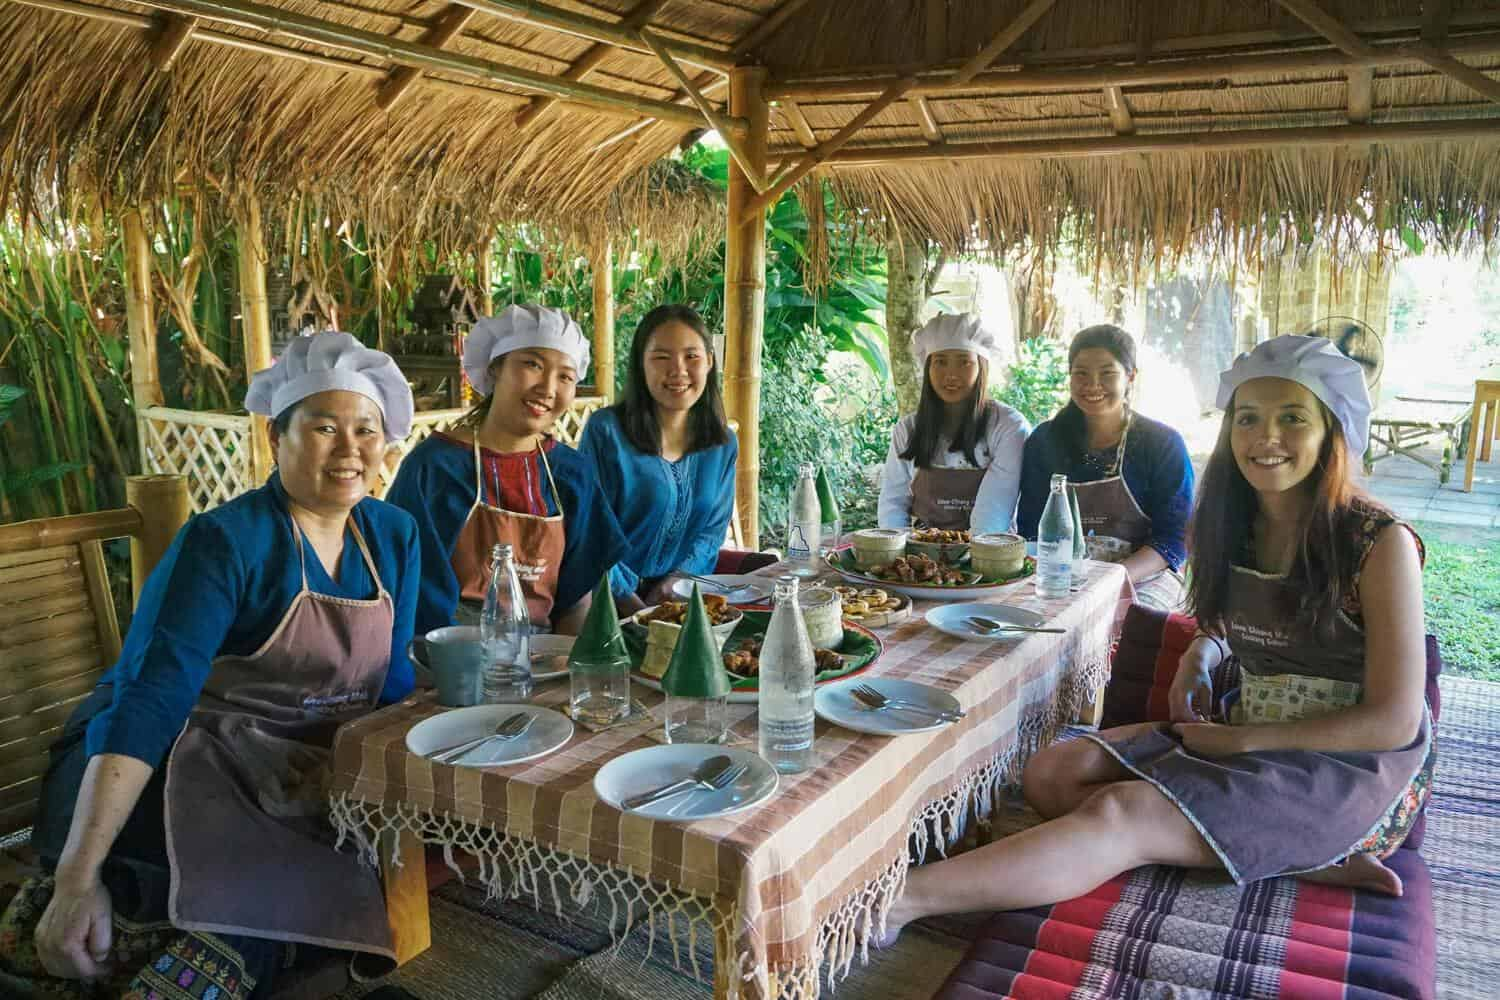 Chiang Mai Love Cooking School